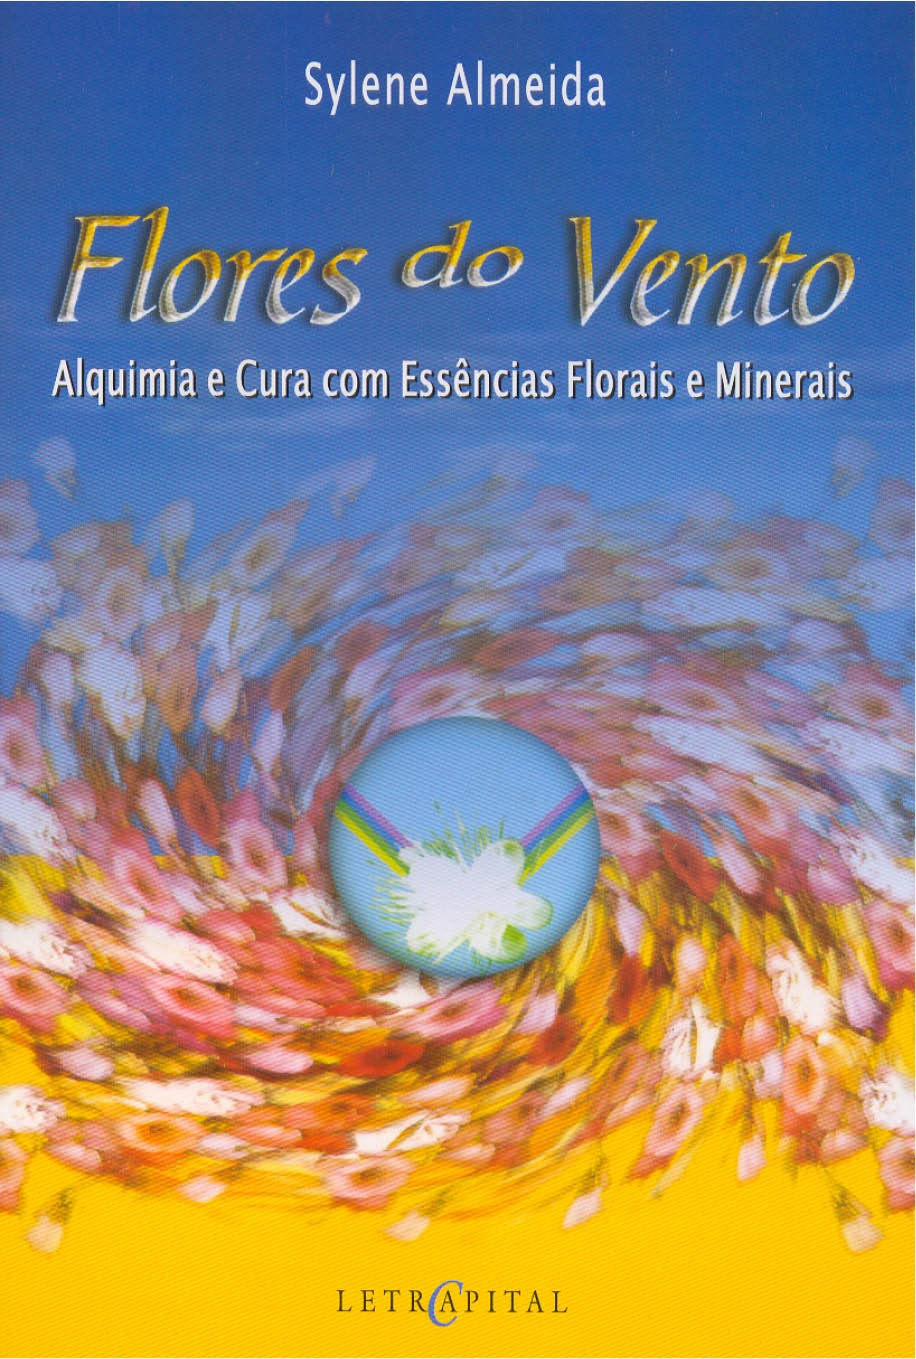 Flores do Vento Alquimia e Cura com Essências Florais e Minerais